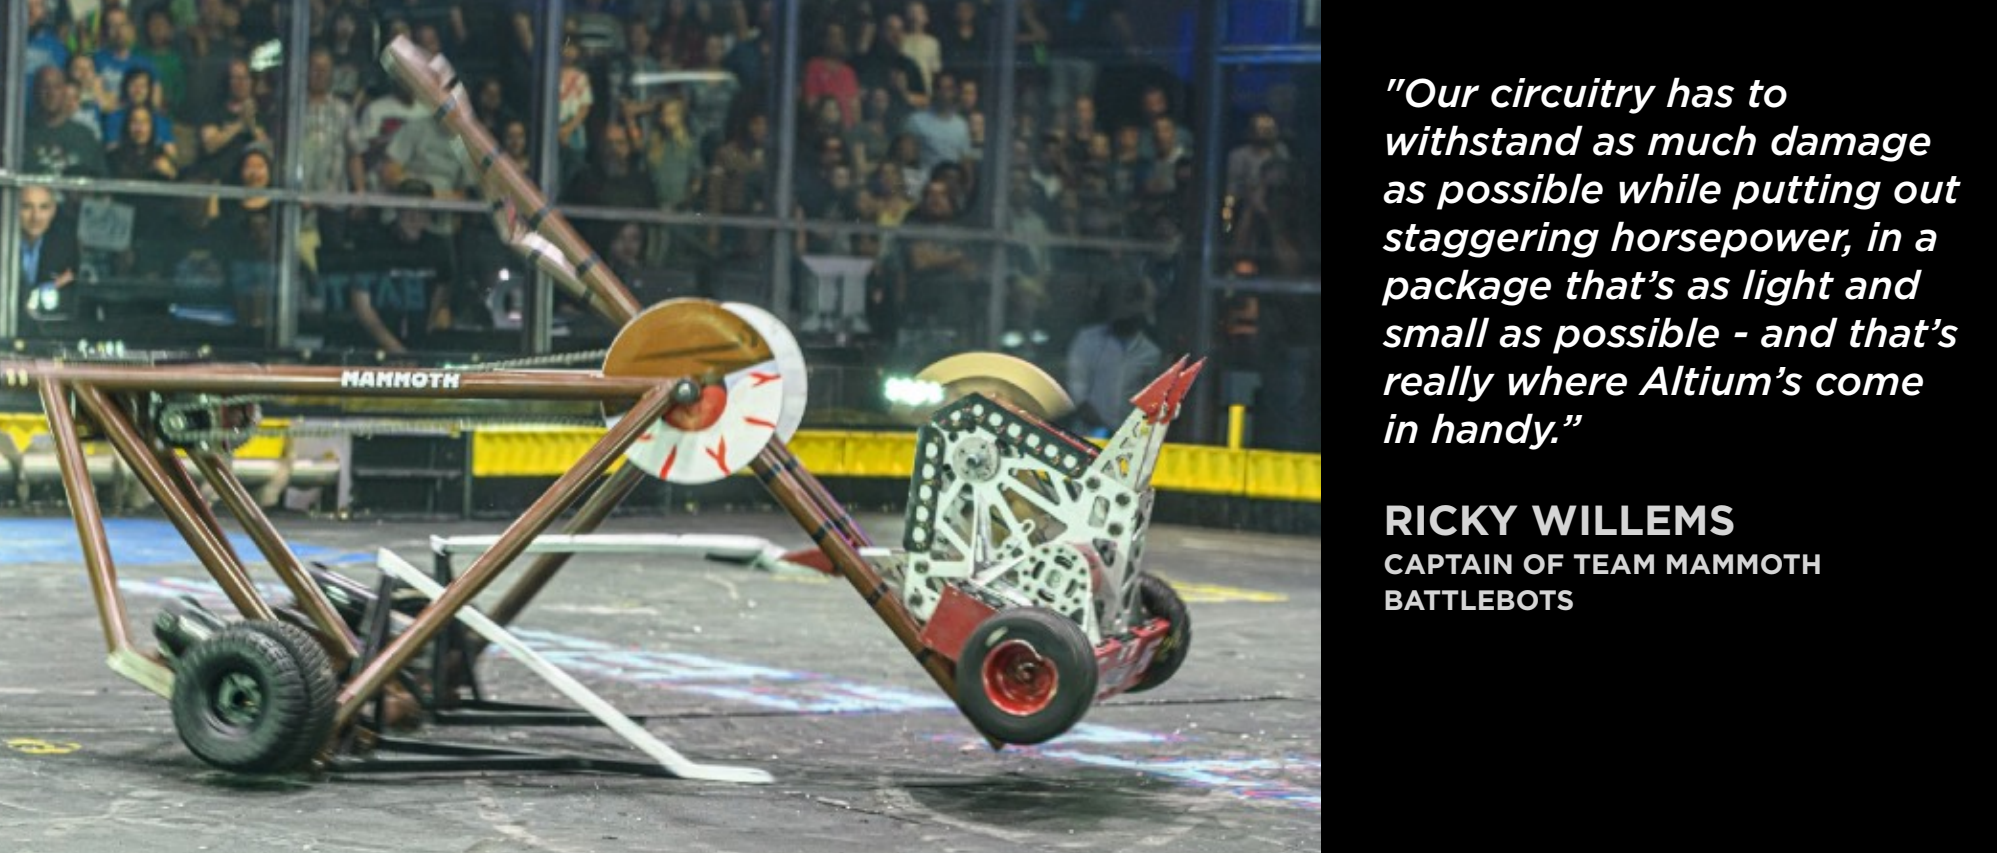 circuitry in battle bots has to withstand damages while putting out staggering horsepower